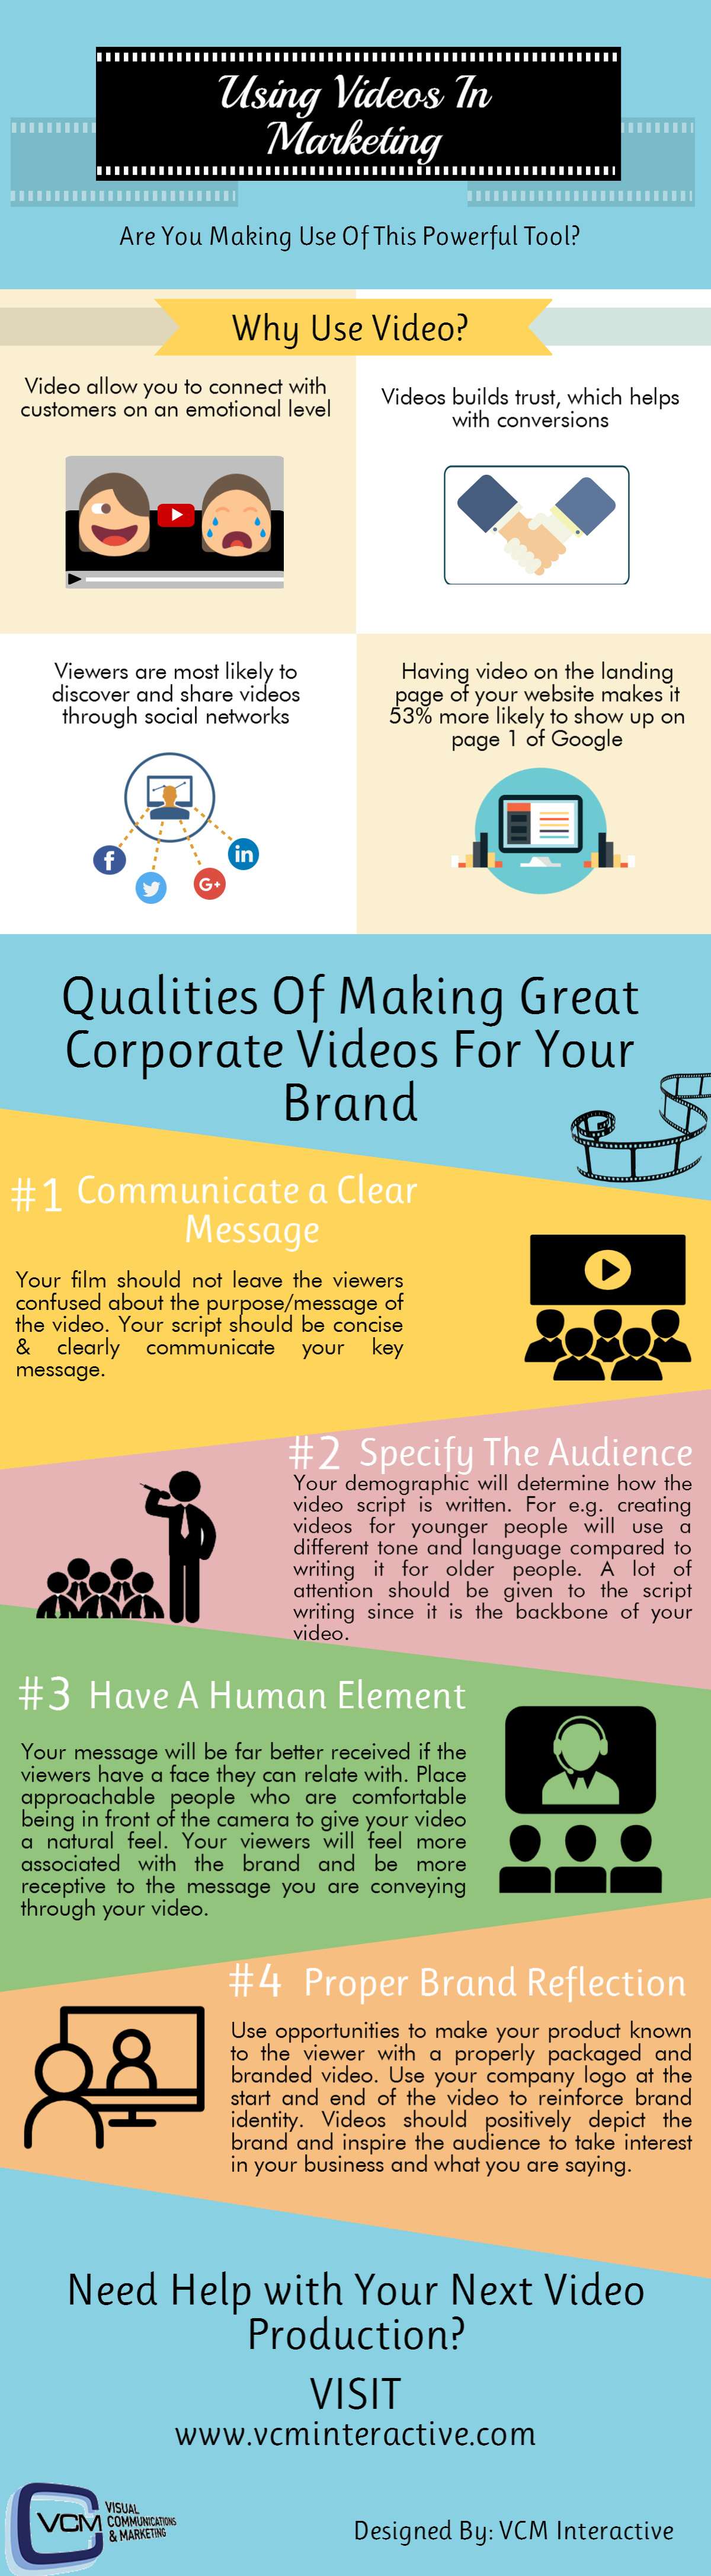 Corporate Video Production Toronto-Using Video In Marketing